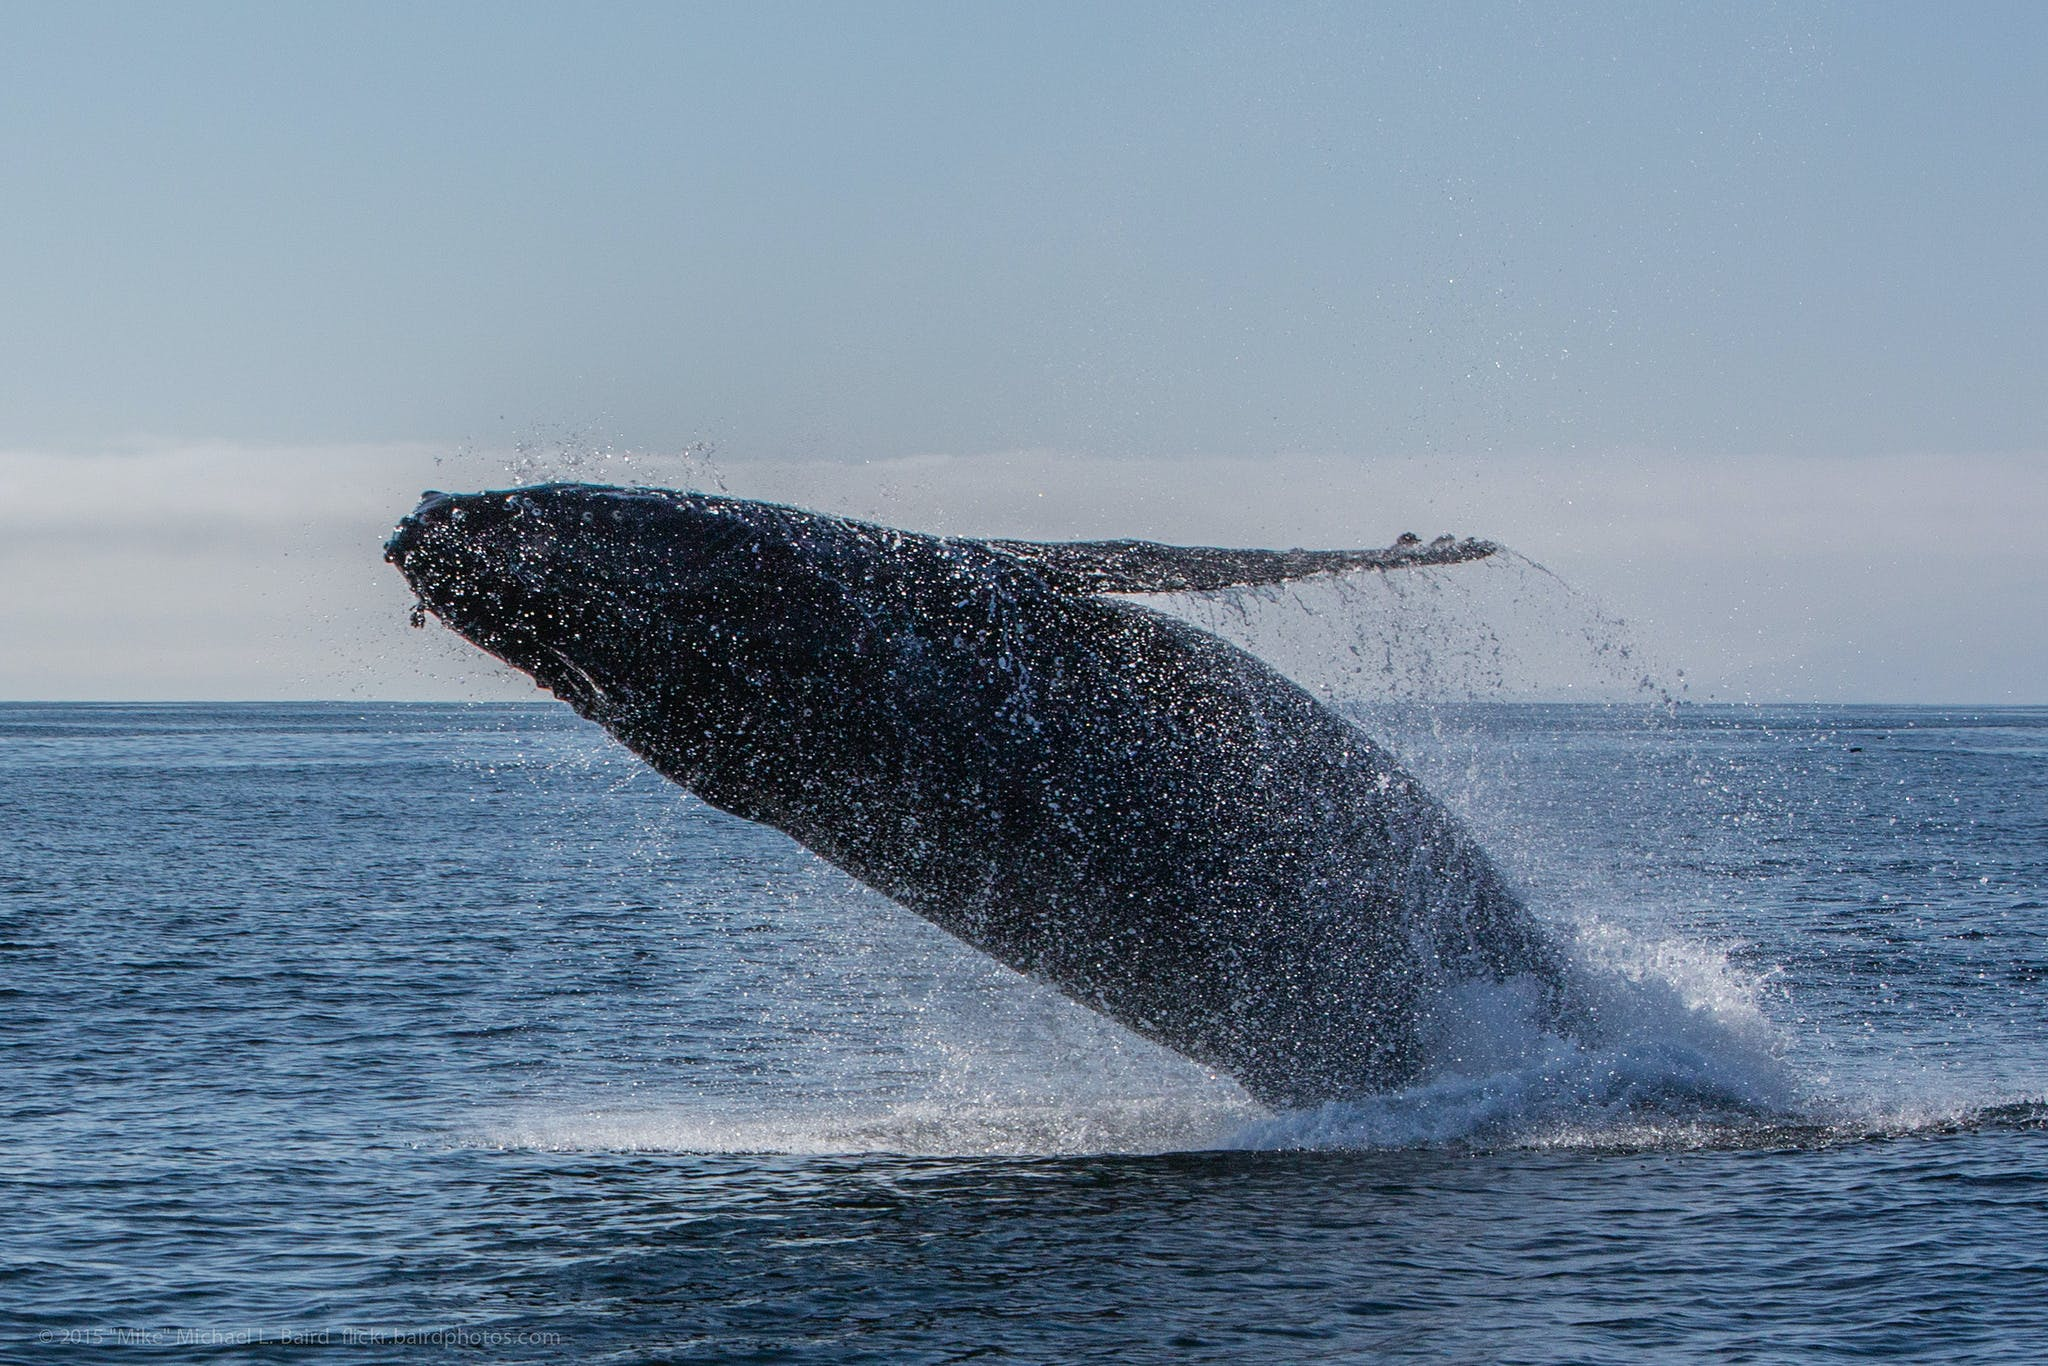 a humpback whale breaching the water